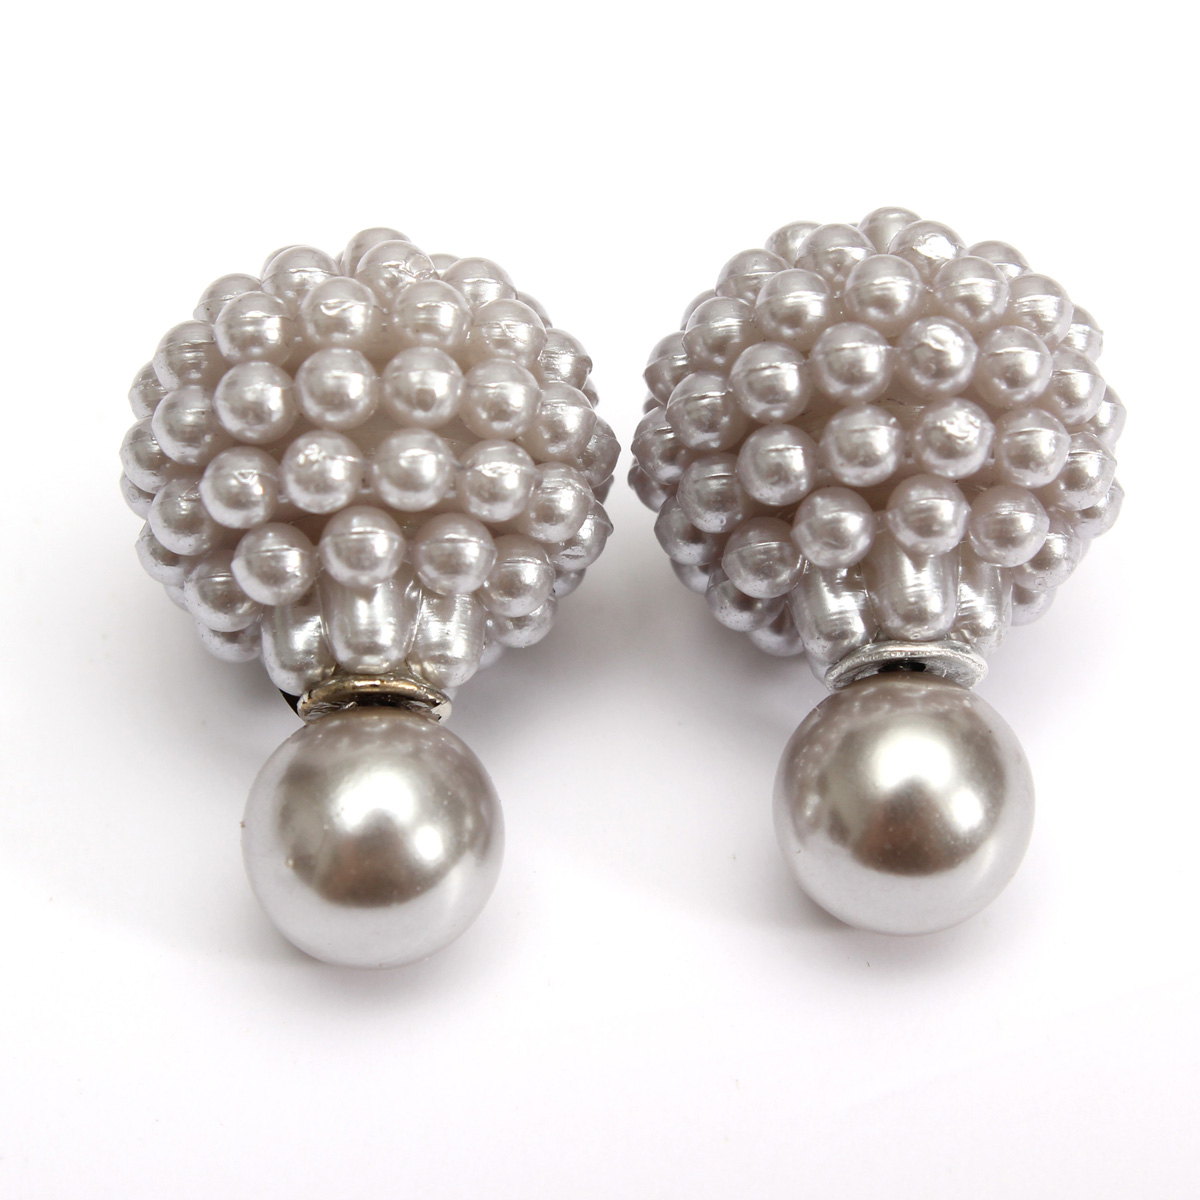 Celebrity Style Beads: 1Pair Celebrity Women Double Pearl Beads Hollow Ball Ear